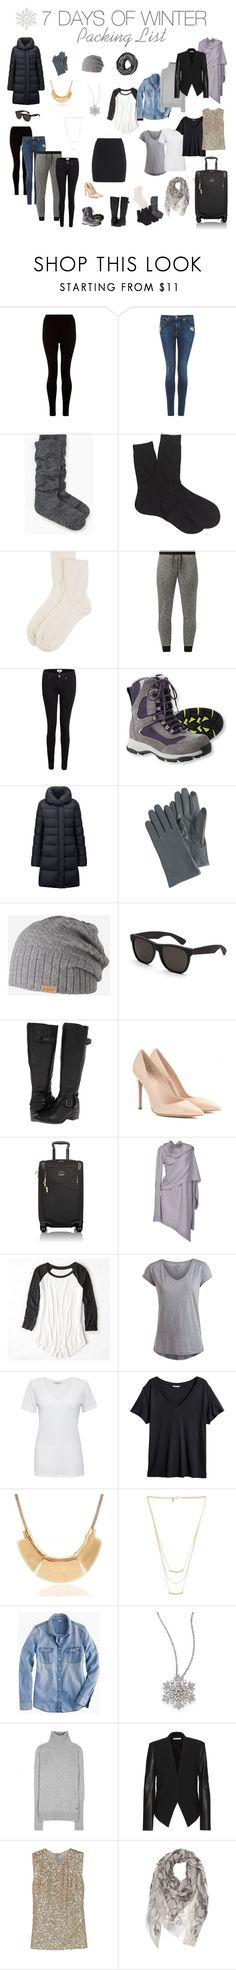 7 Days of Winter Packing List by encircled on Polyvore featuring Rick Owens, J.Crew, H&M, KaufmanFranco, Cotton Citizen, Pieces, American Eagle Outfitters, Loro Piana, Uniqlo and Helmut Lang